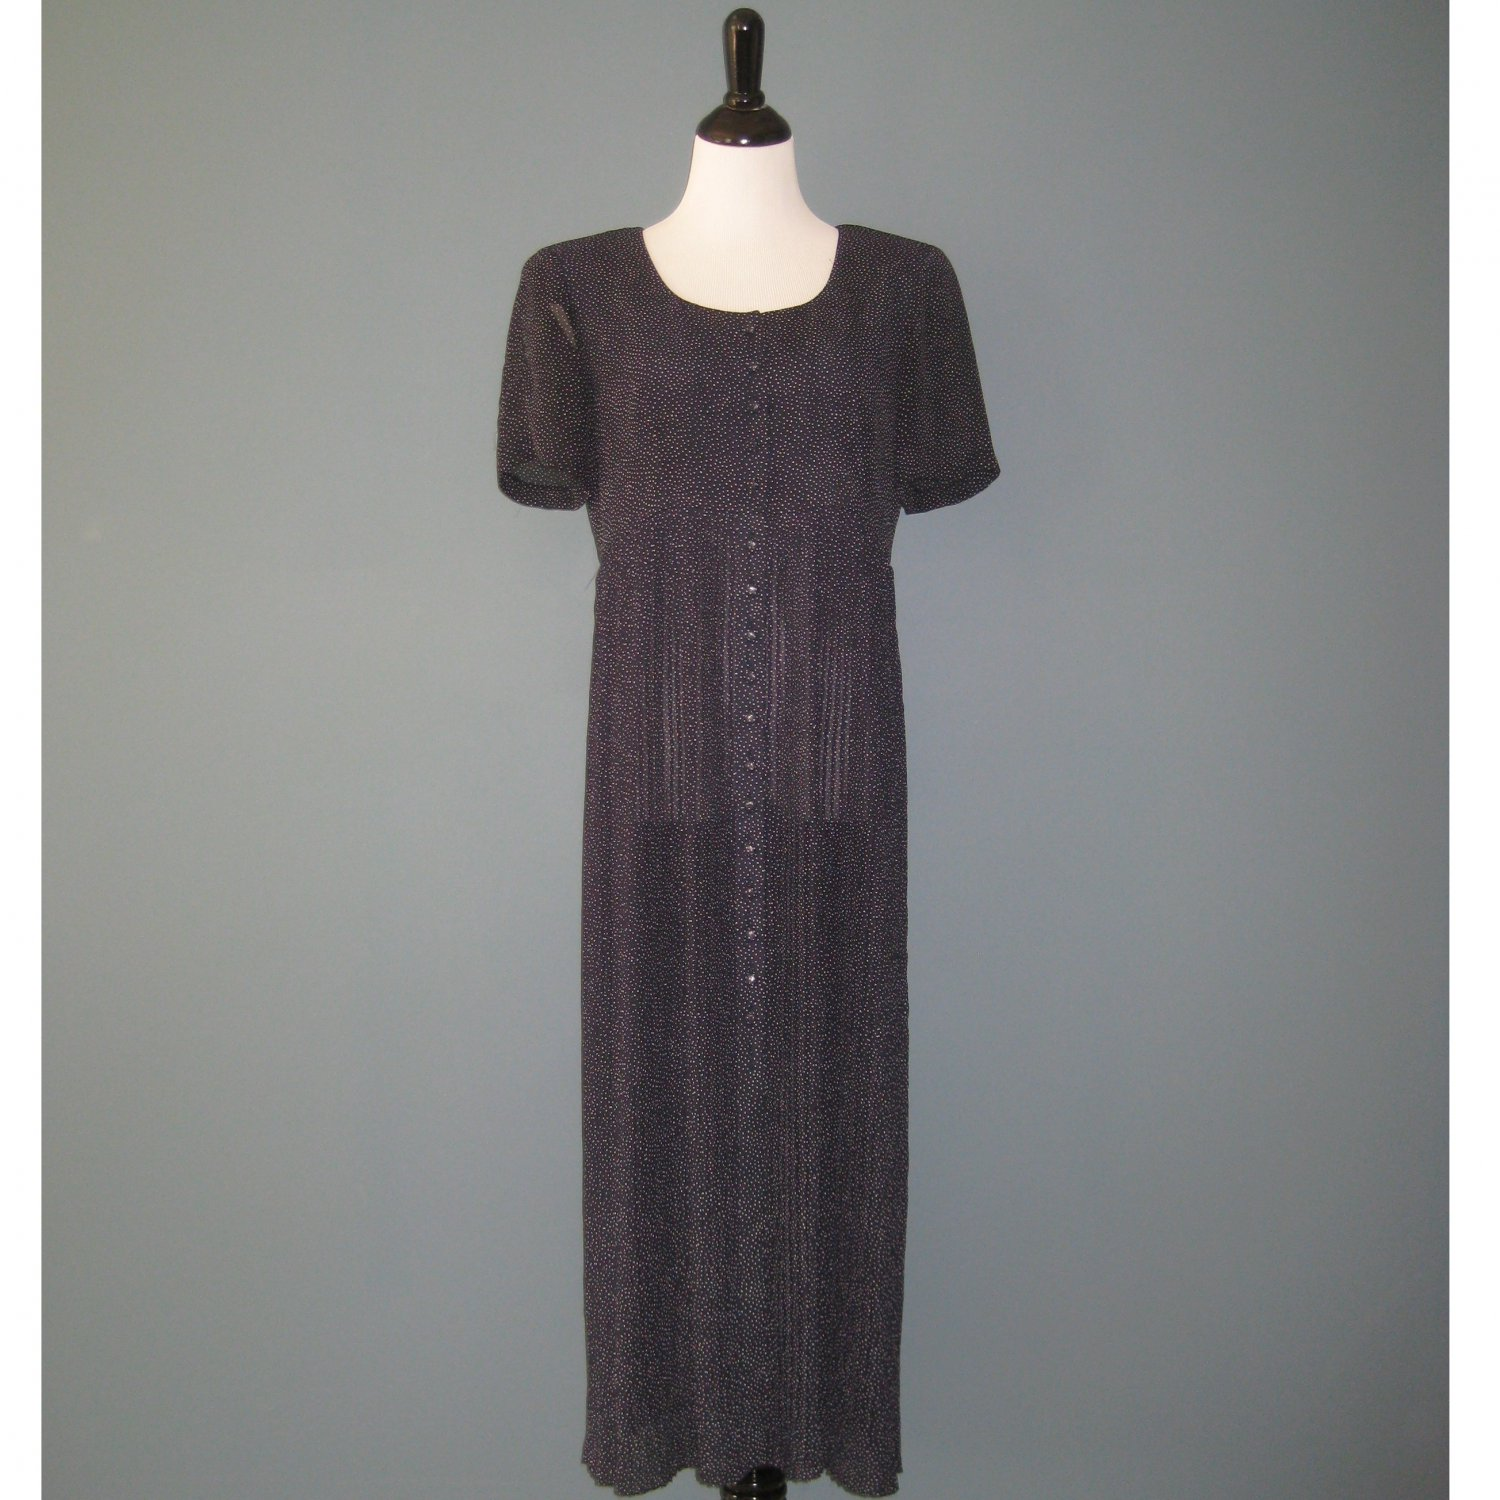 Pre-Owned Liz Claiborne S/S Navy Blue Pin Dot Sheer Pleated Dress - 8